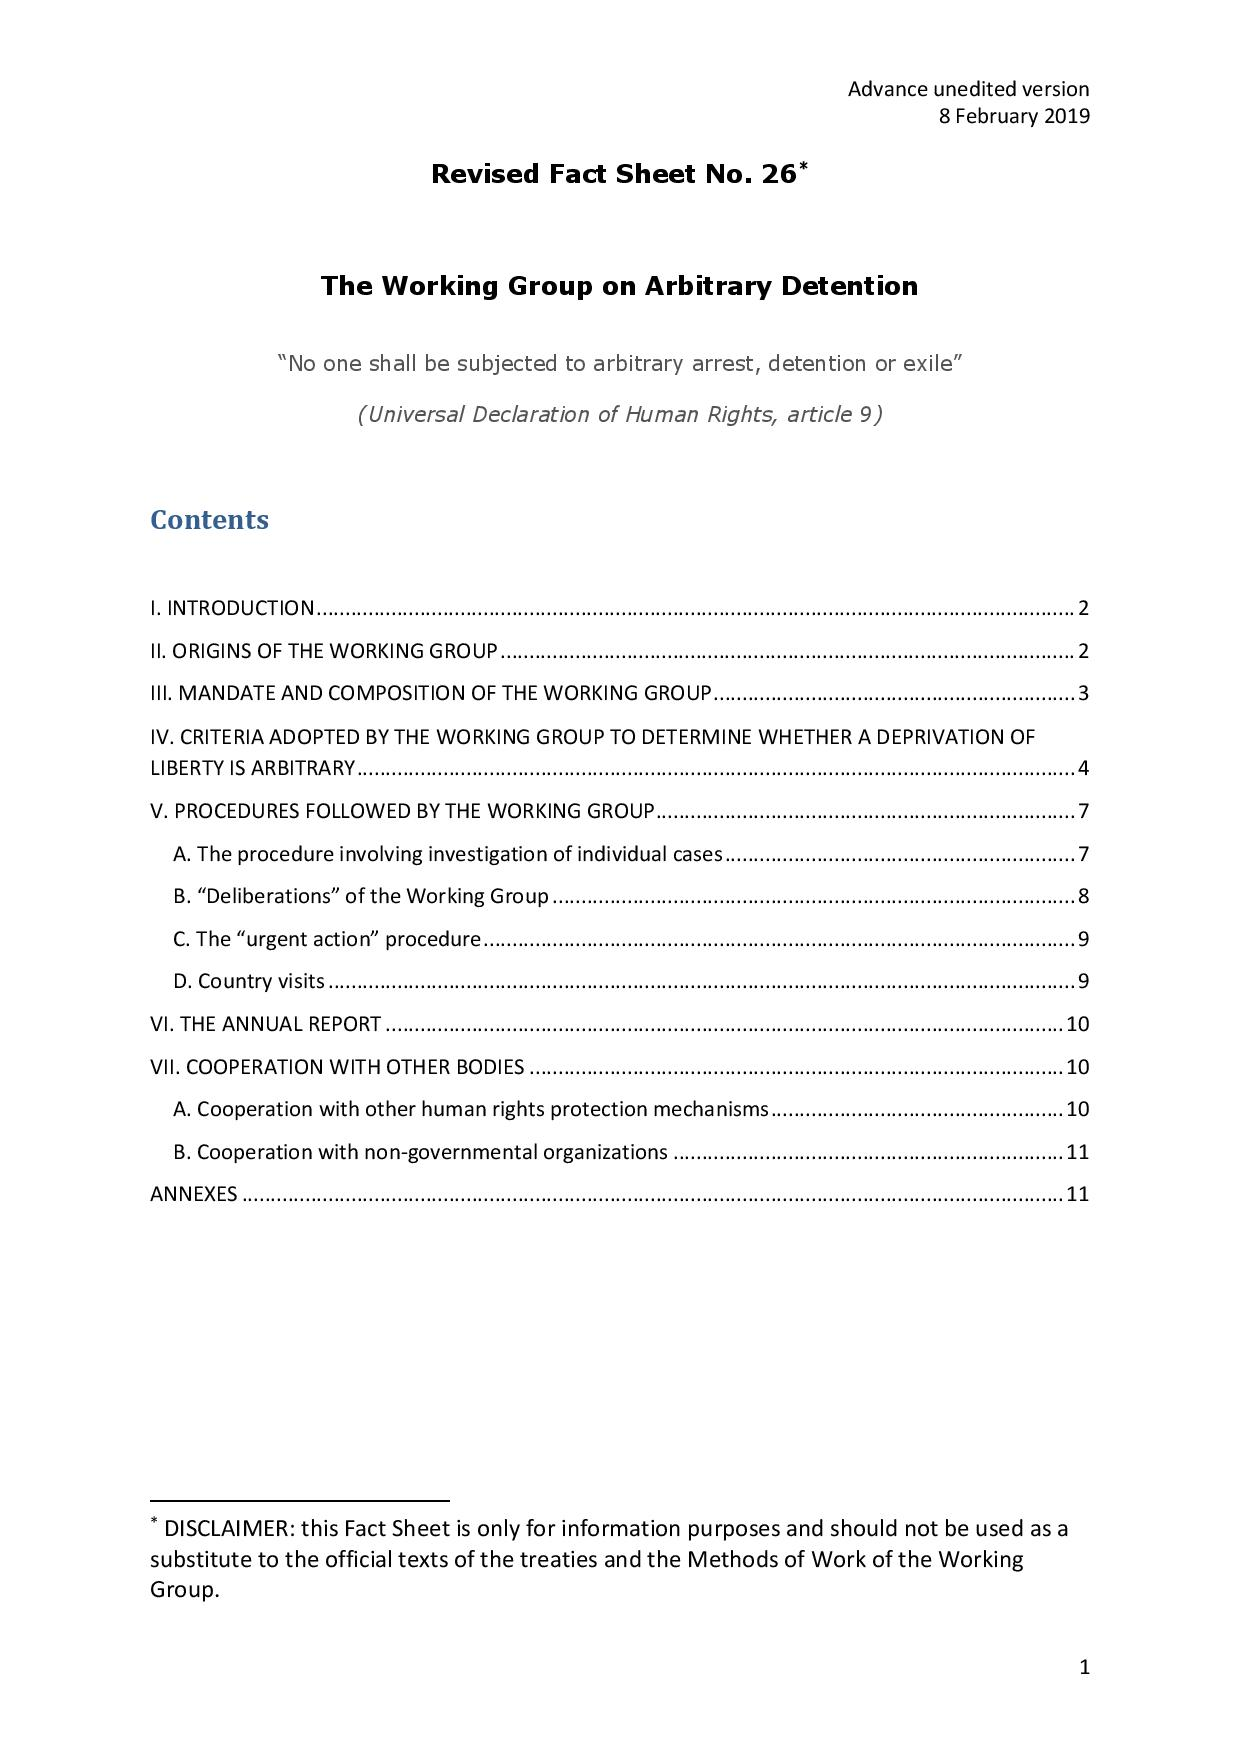 The Working Group On Arbitrary Detention Revised Worksheet